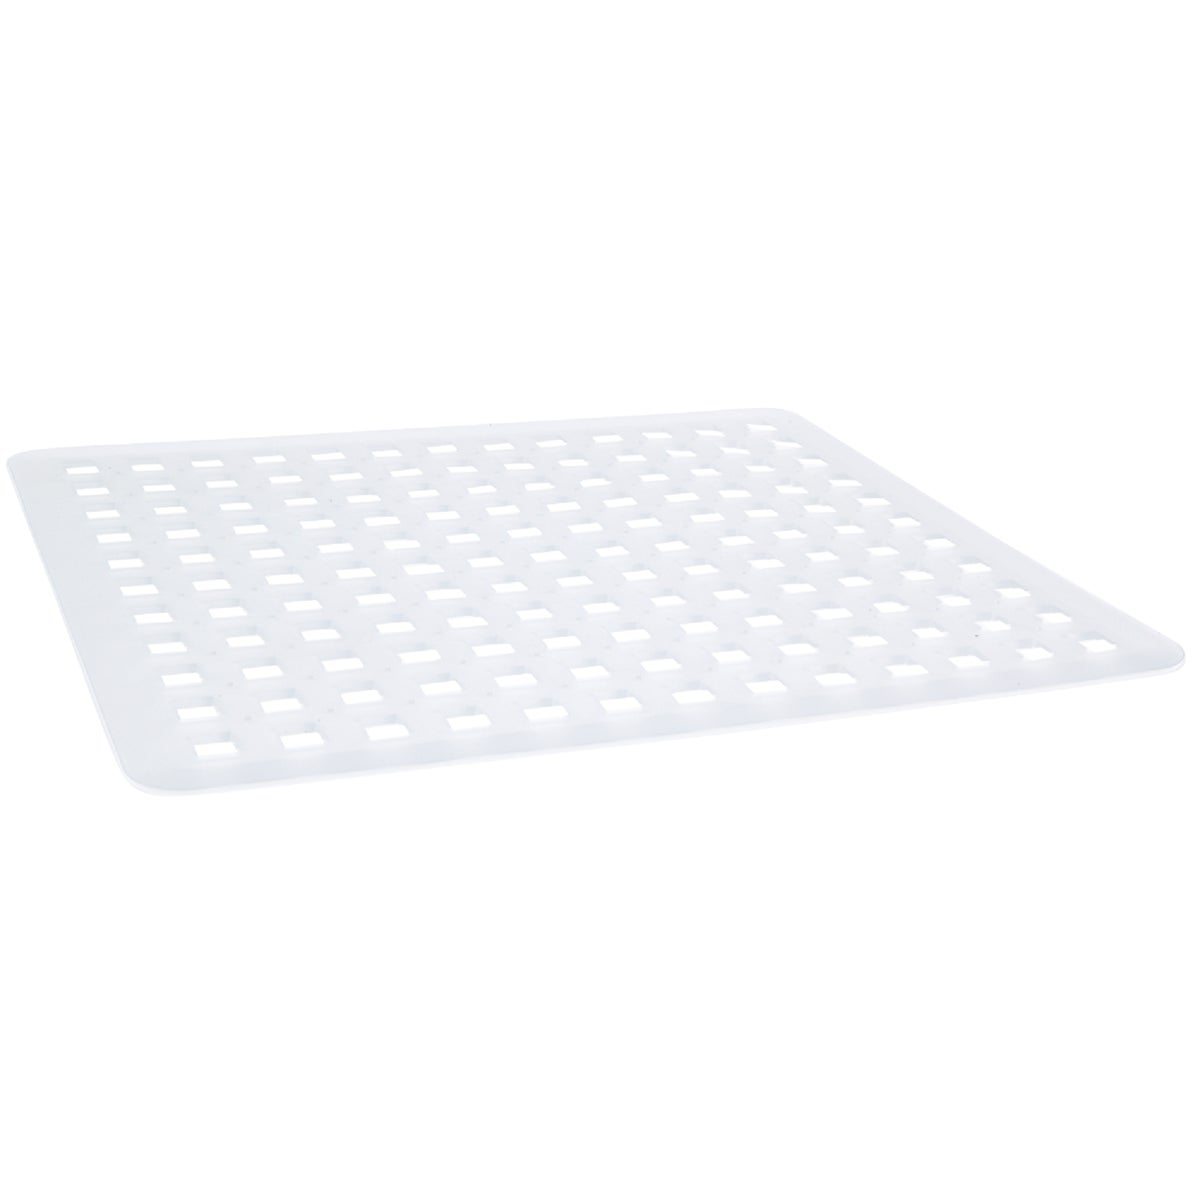 REGULAR CLEAR SINK MAT - 36600 by Interdesign Inc